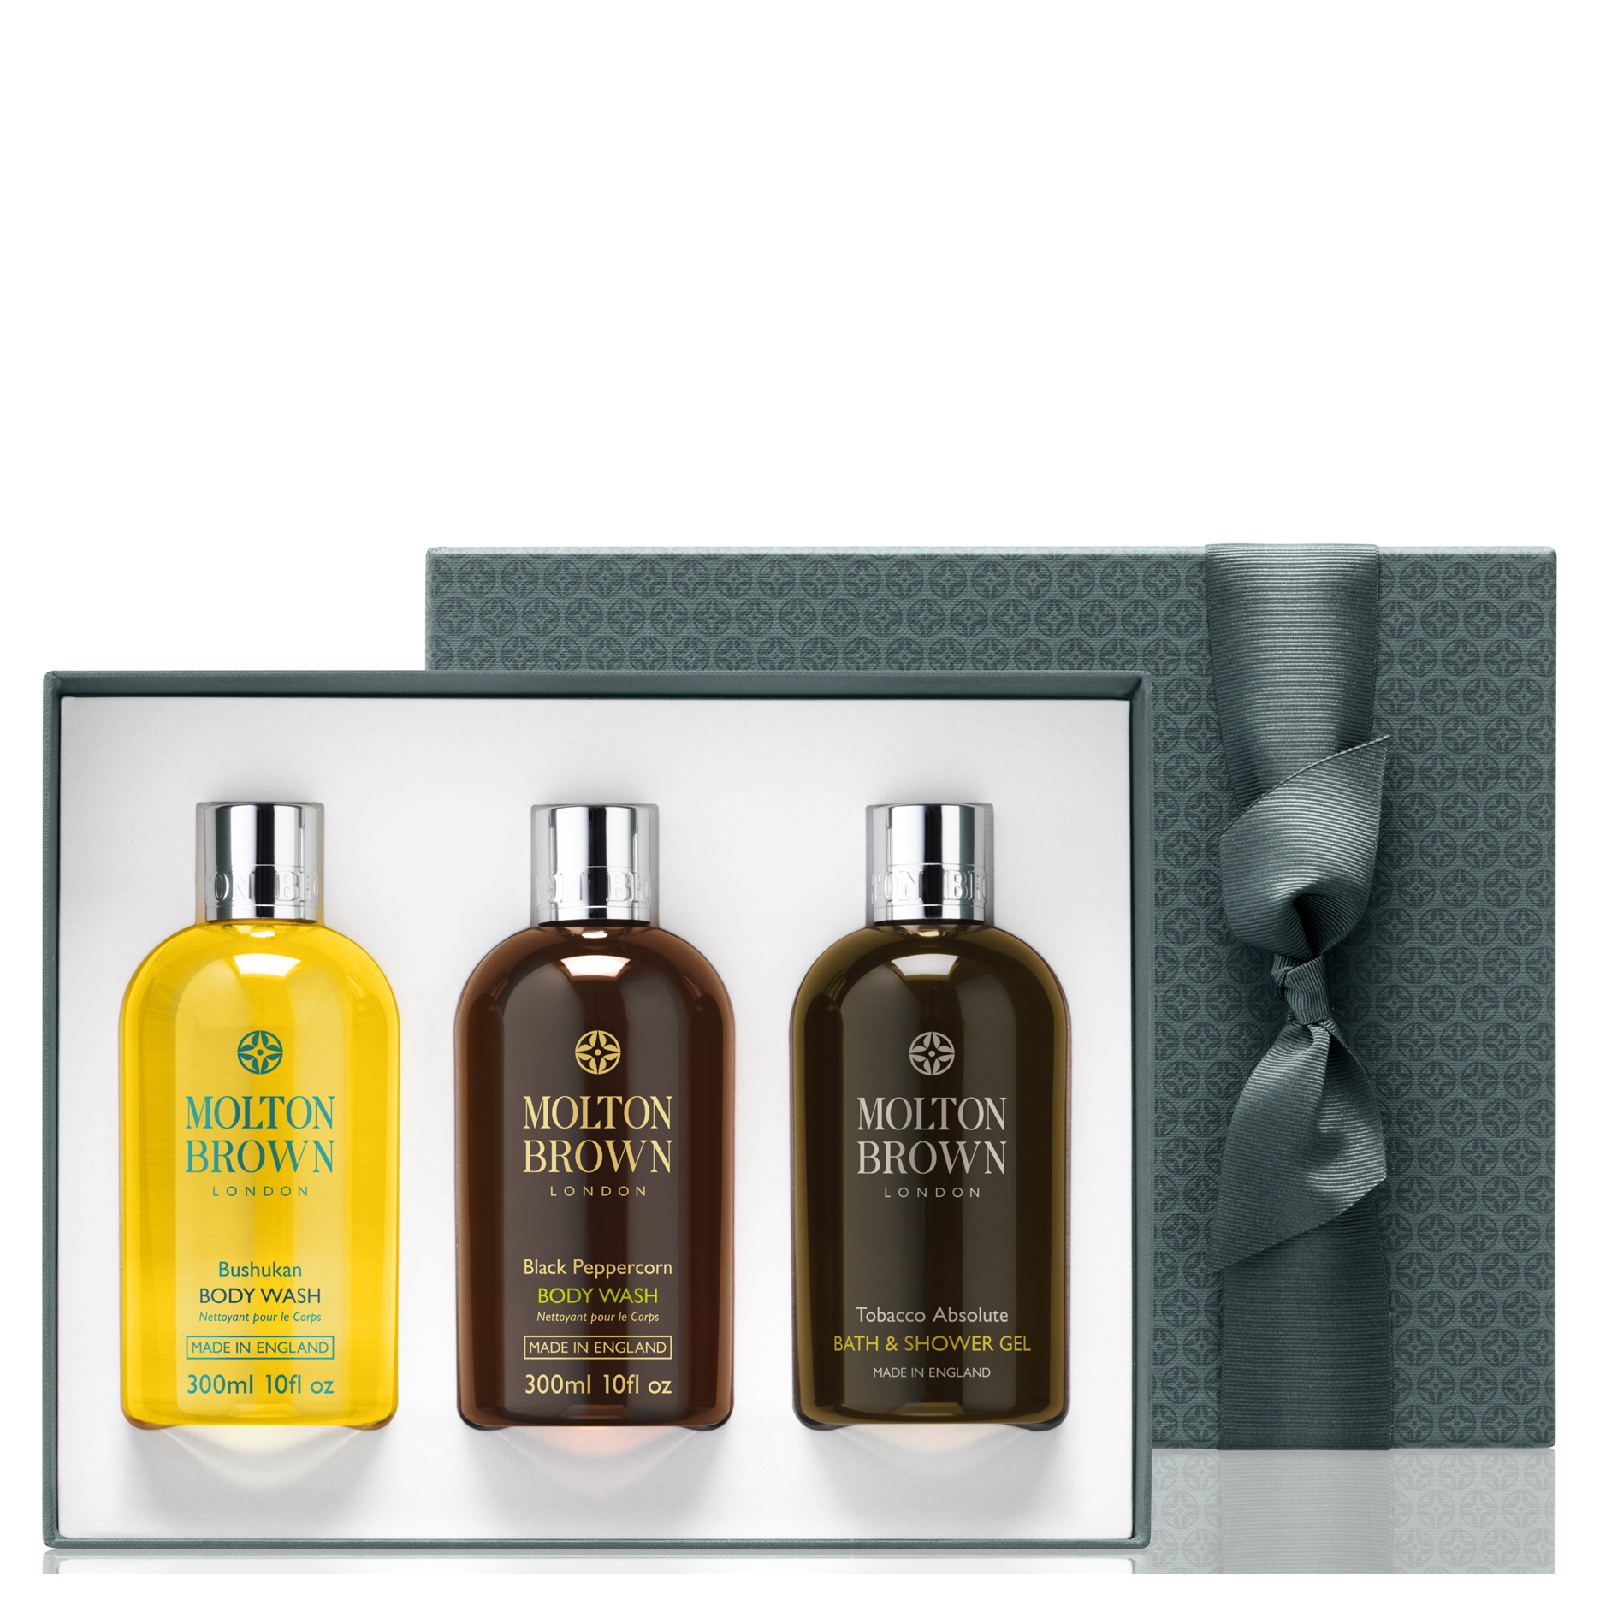 Molton Brown Iconic Washes Gift Set For Him (Worth $74.50). Description